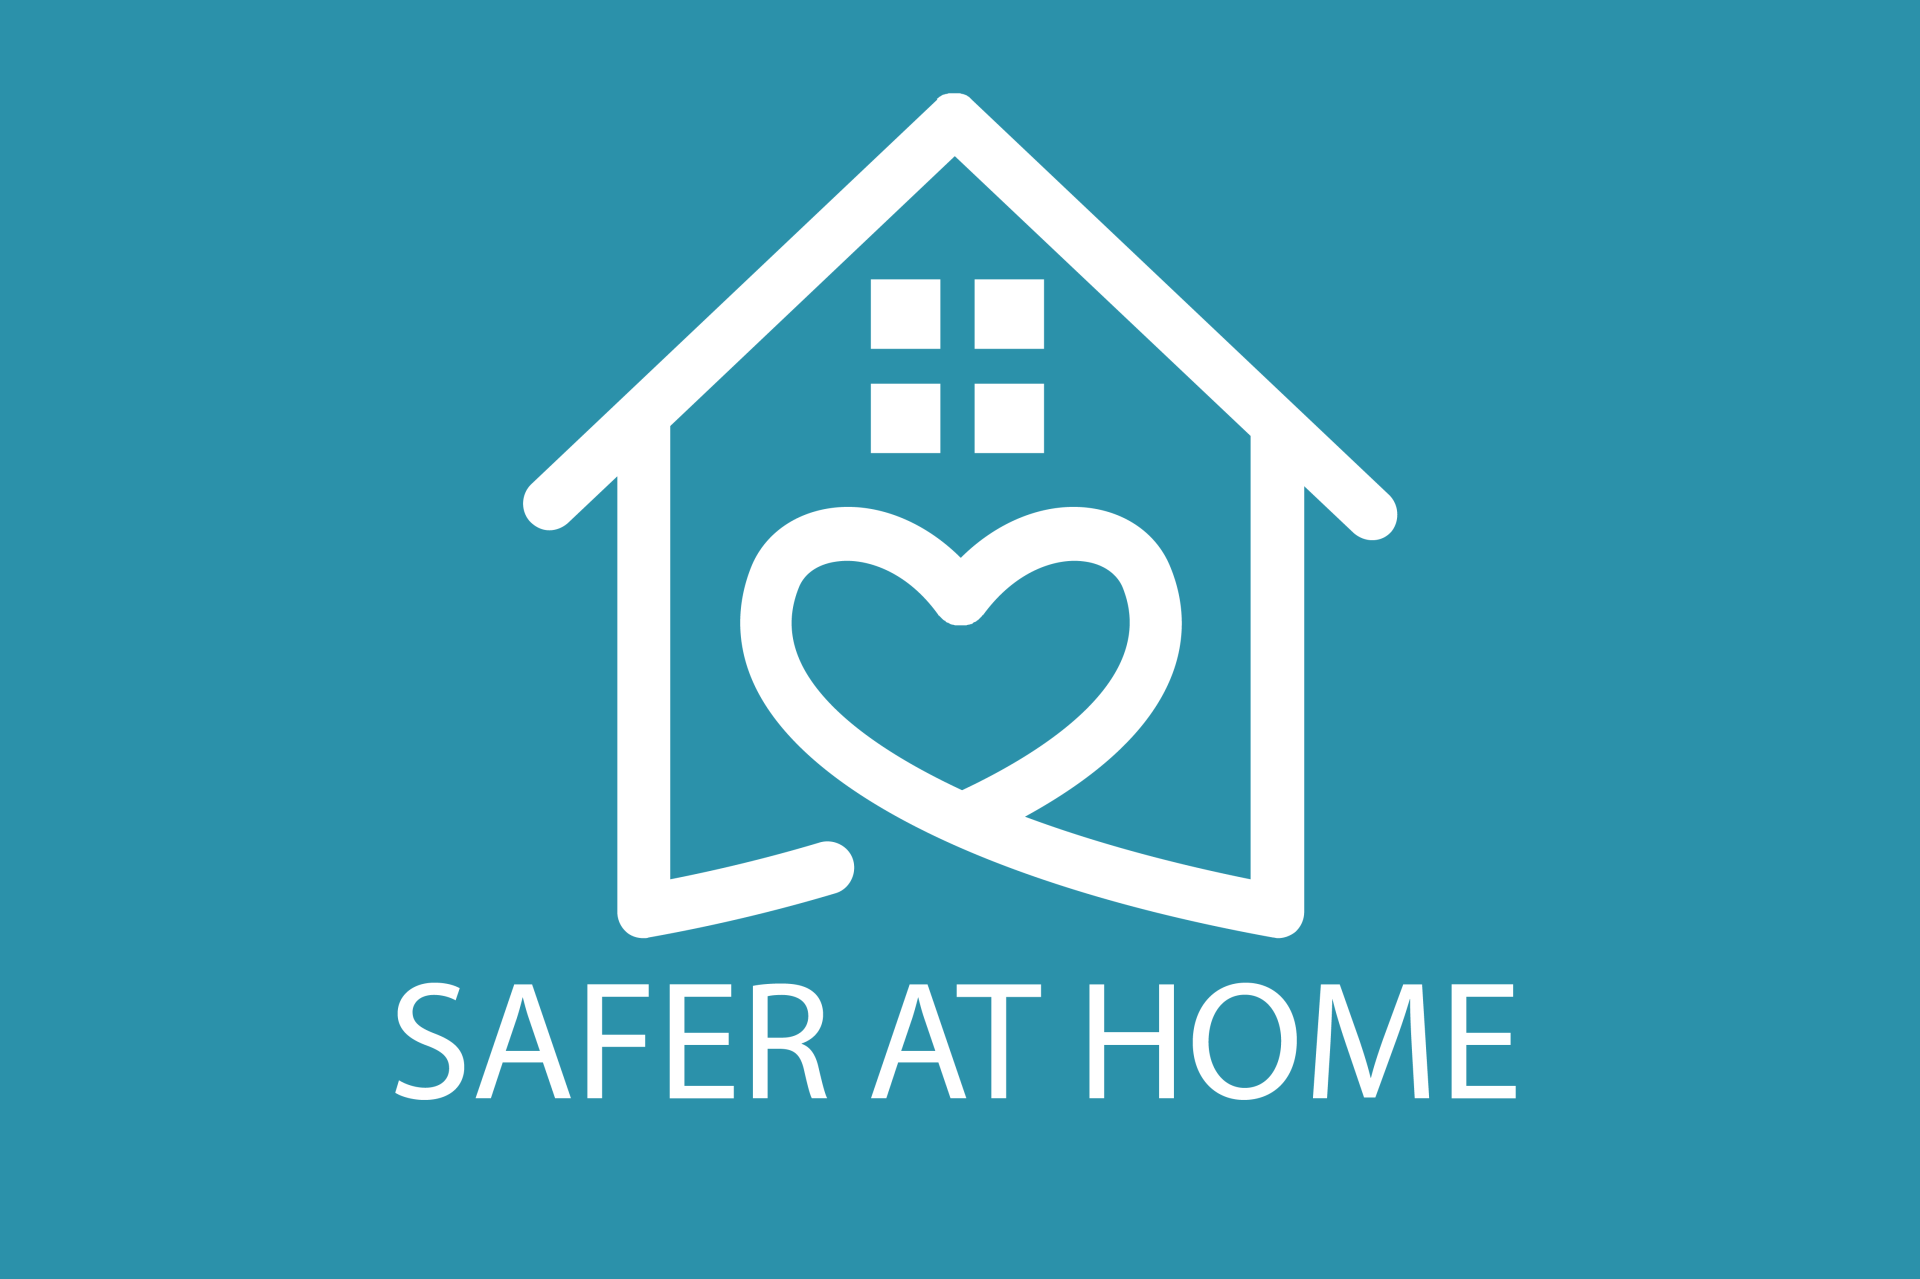 SAFER AT HOME-02